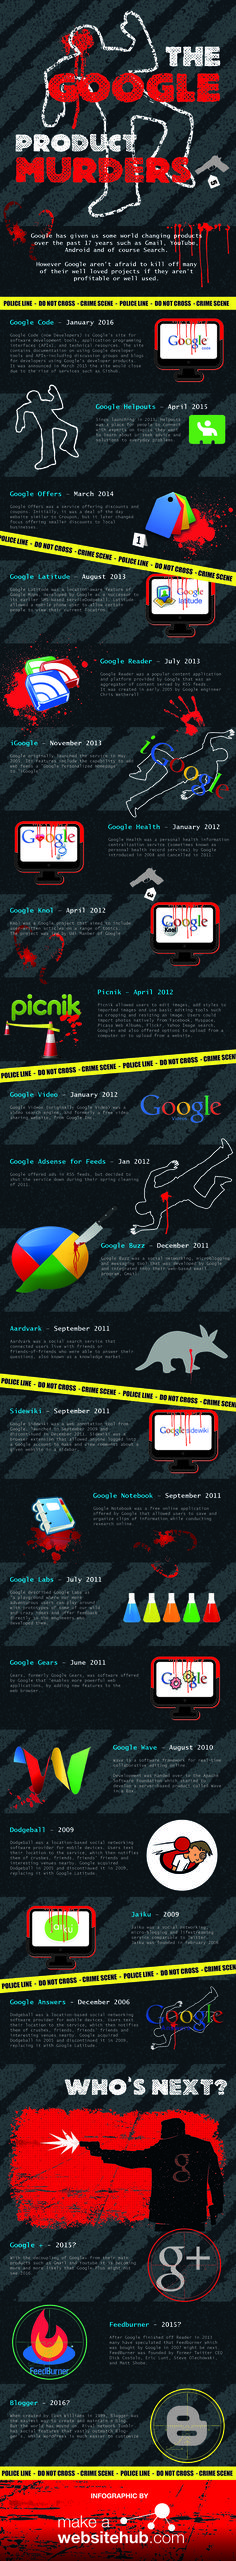 The Google Product Murders #infographic #Google #Internet